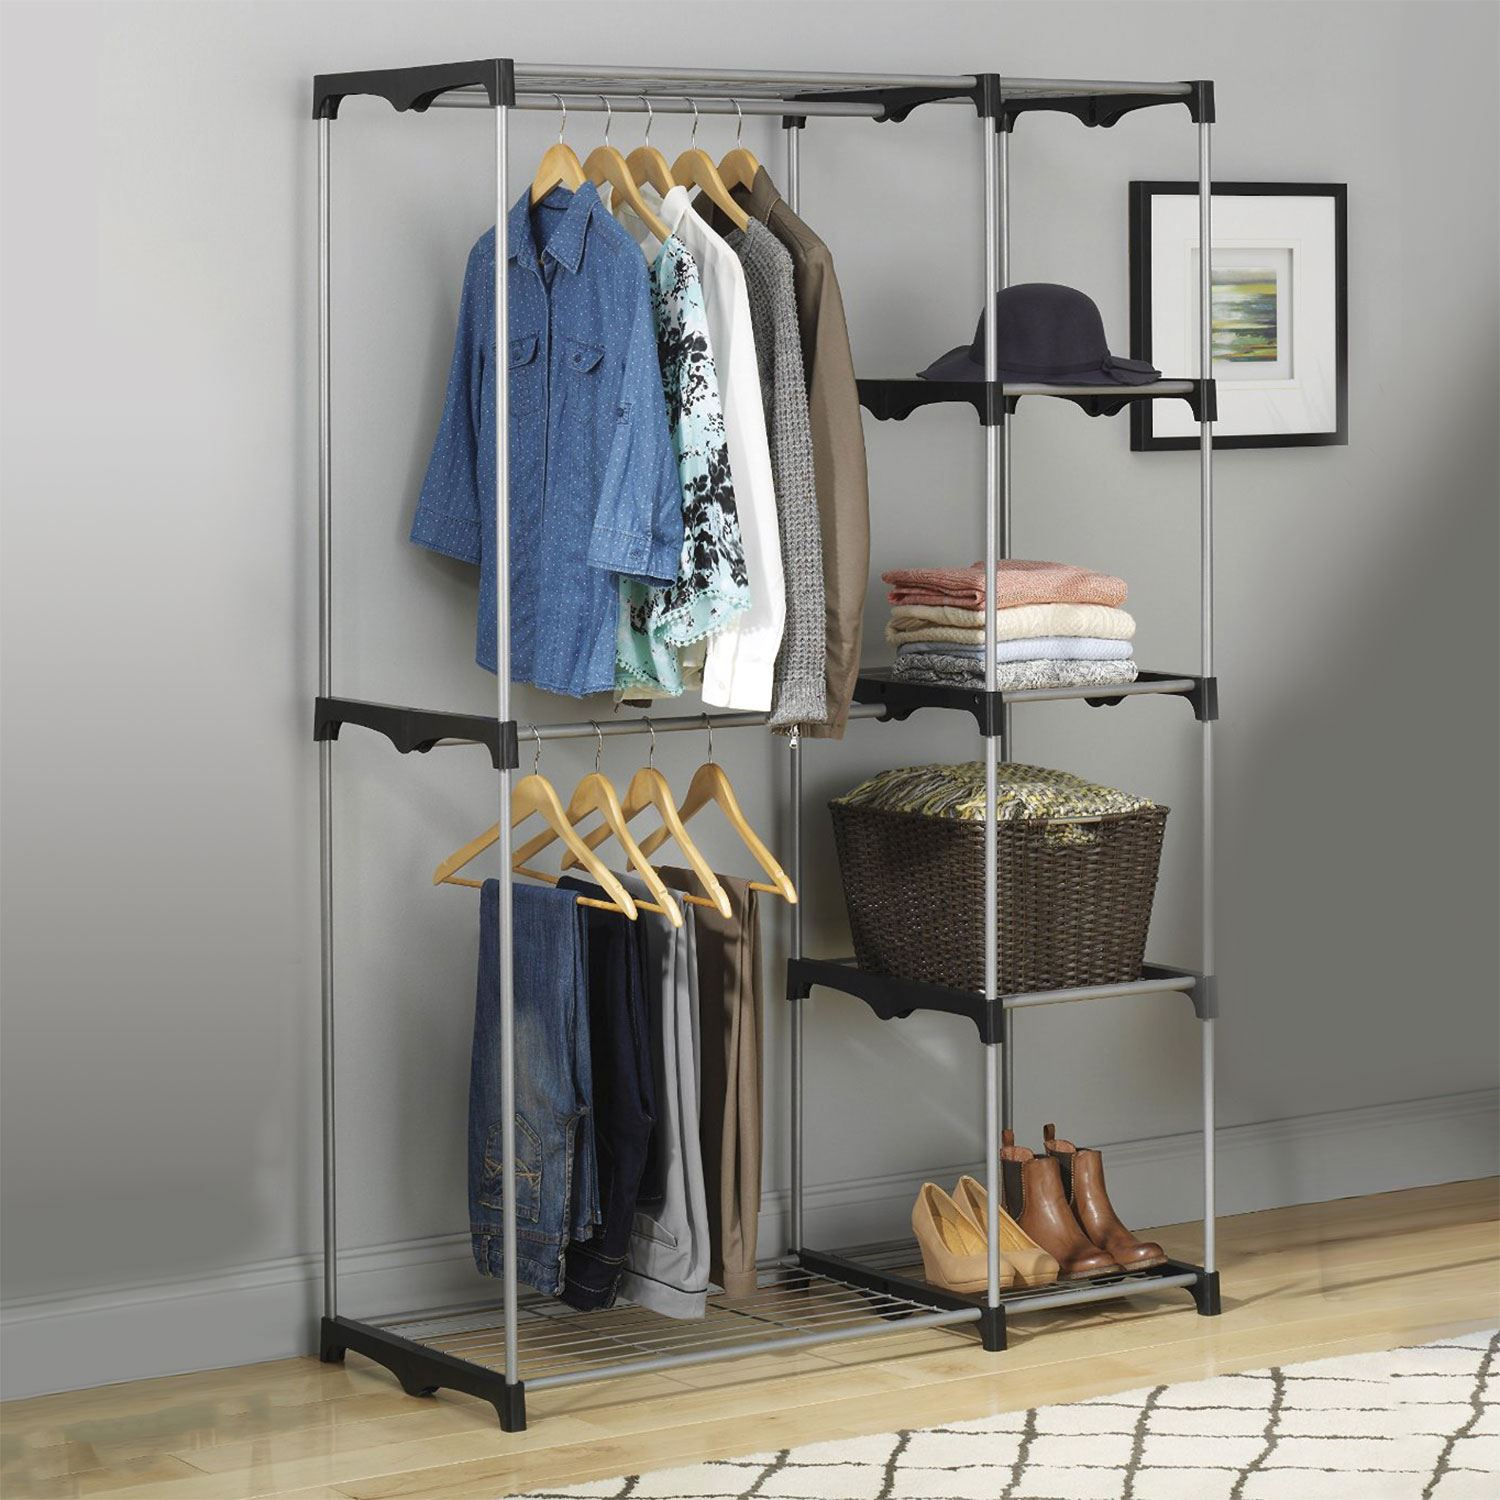 Closet Clothes Rack: Double Rod Freestanding Portable Clothes Wardrobe Closet